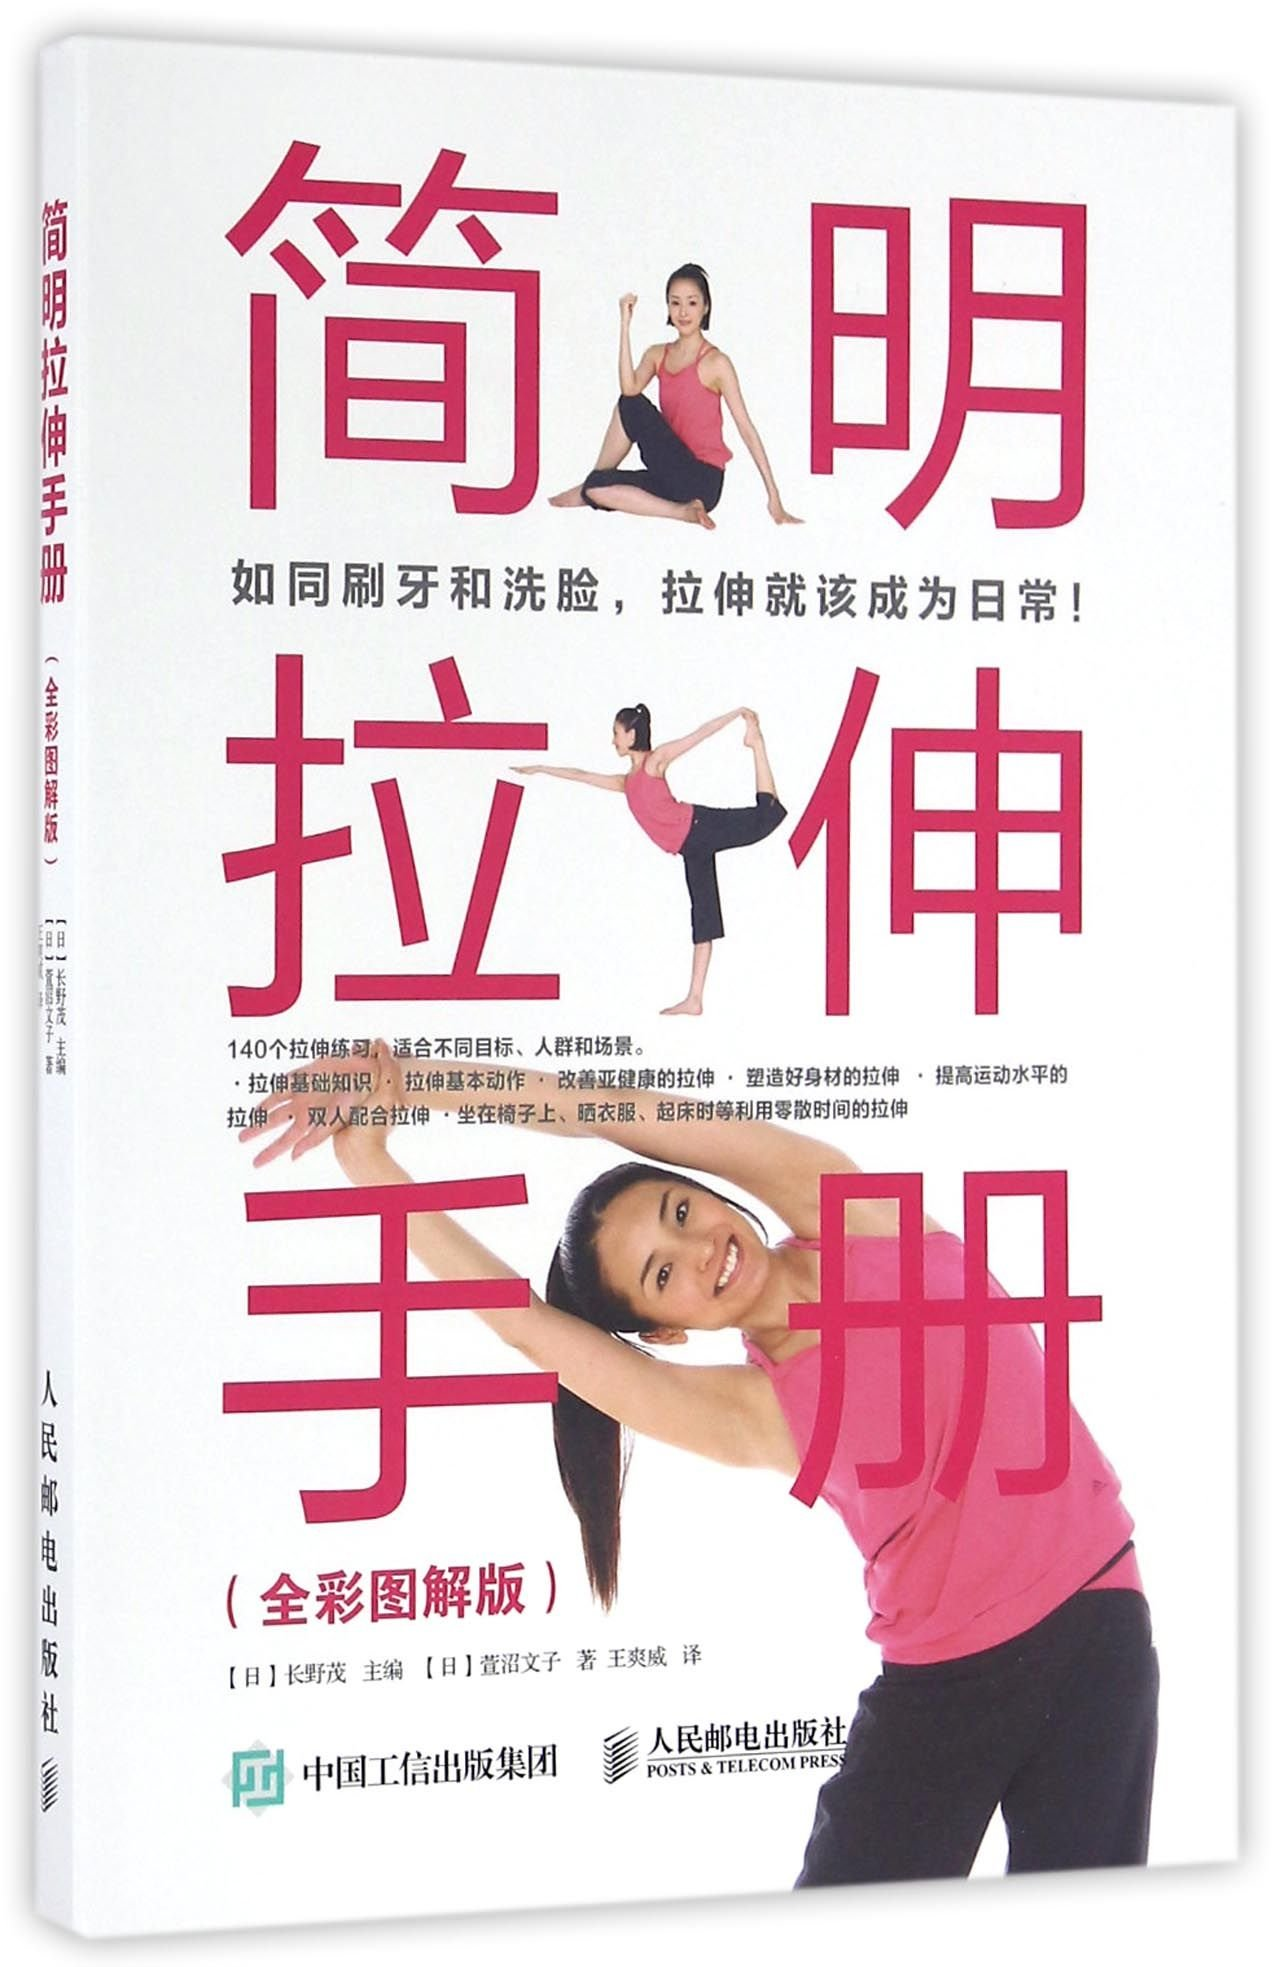 Read Online A Concise Guide to Stretching (Chinese Edition) PDF